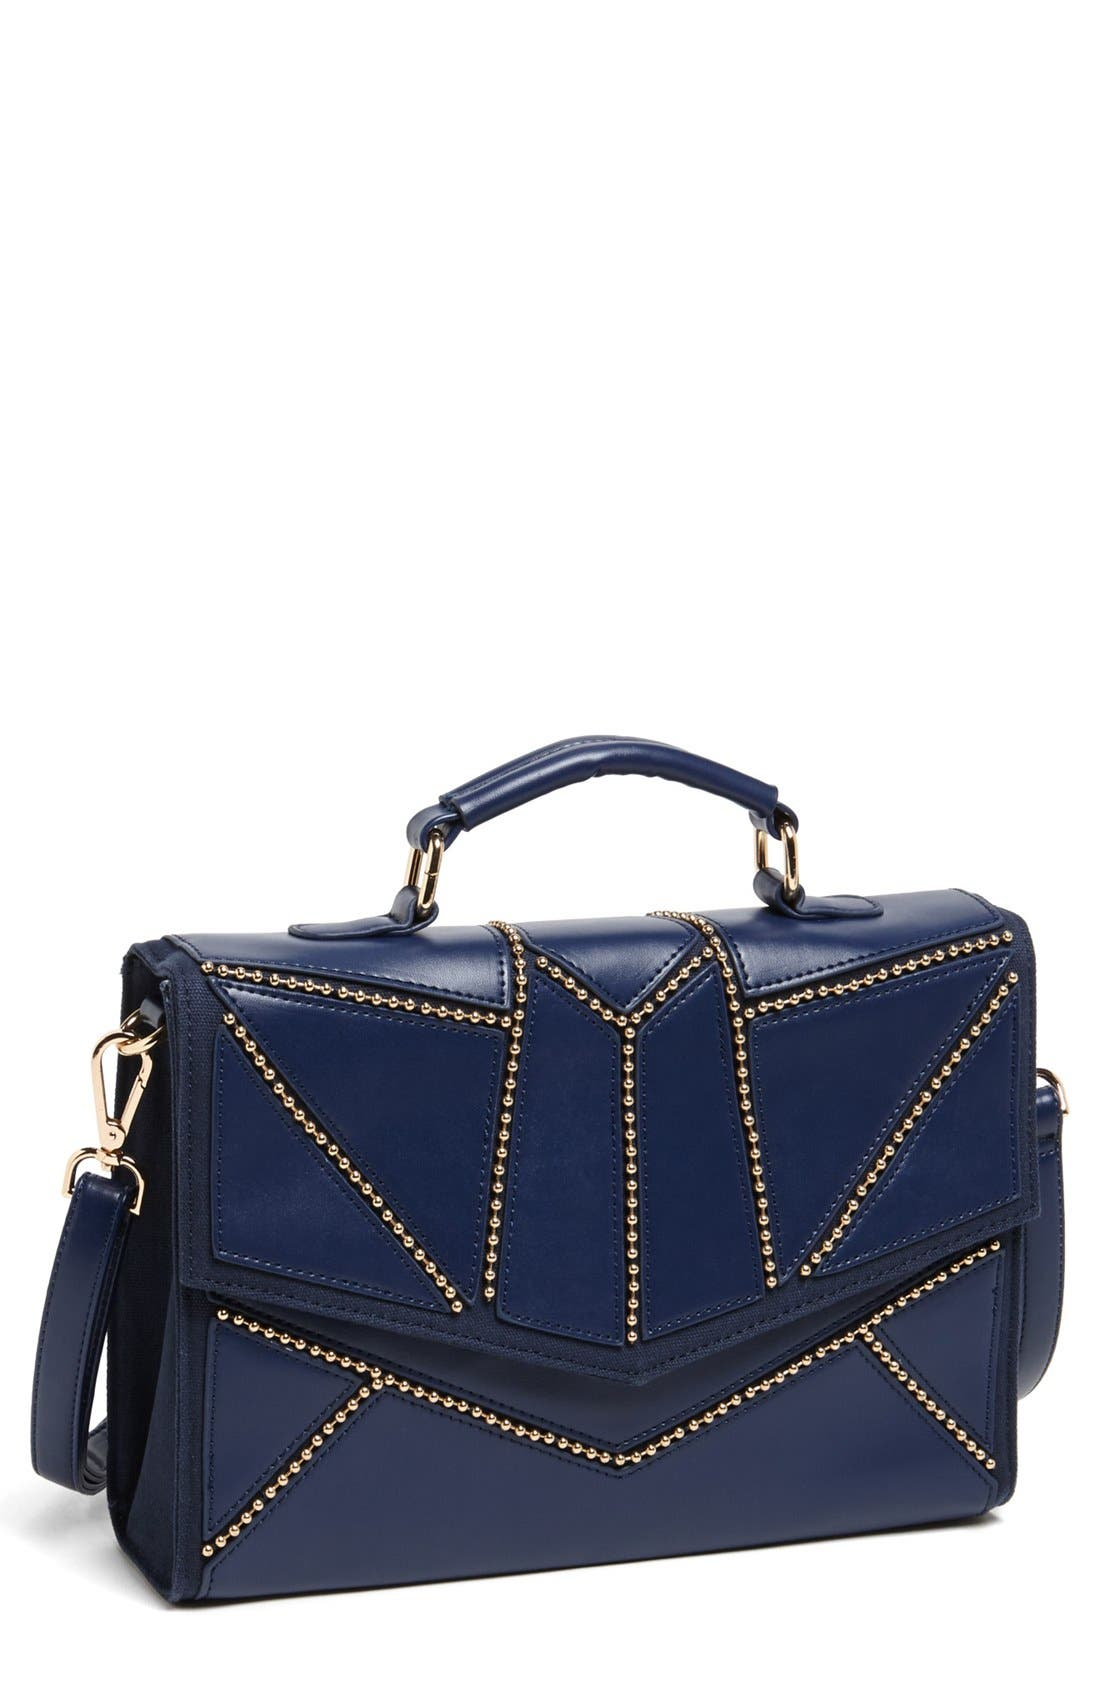 Alternate Image 1 Selected - Nila Anthony Studded Satchel